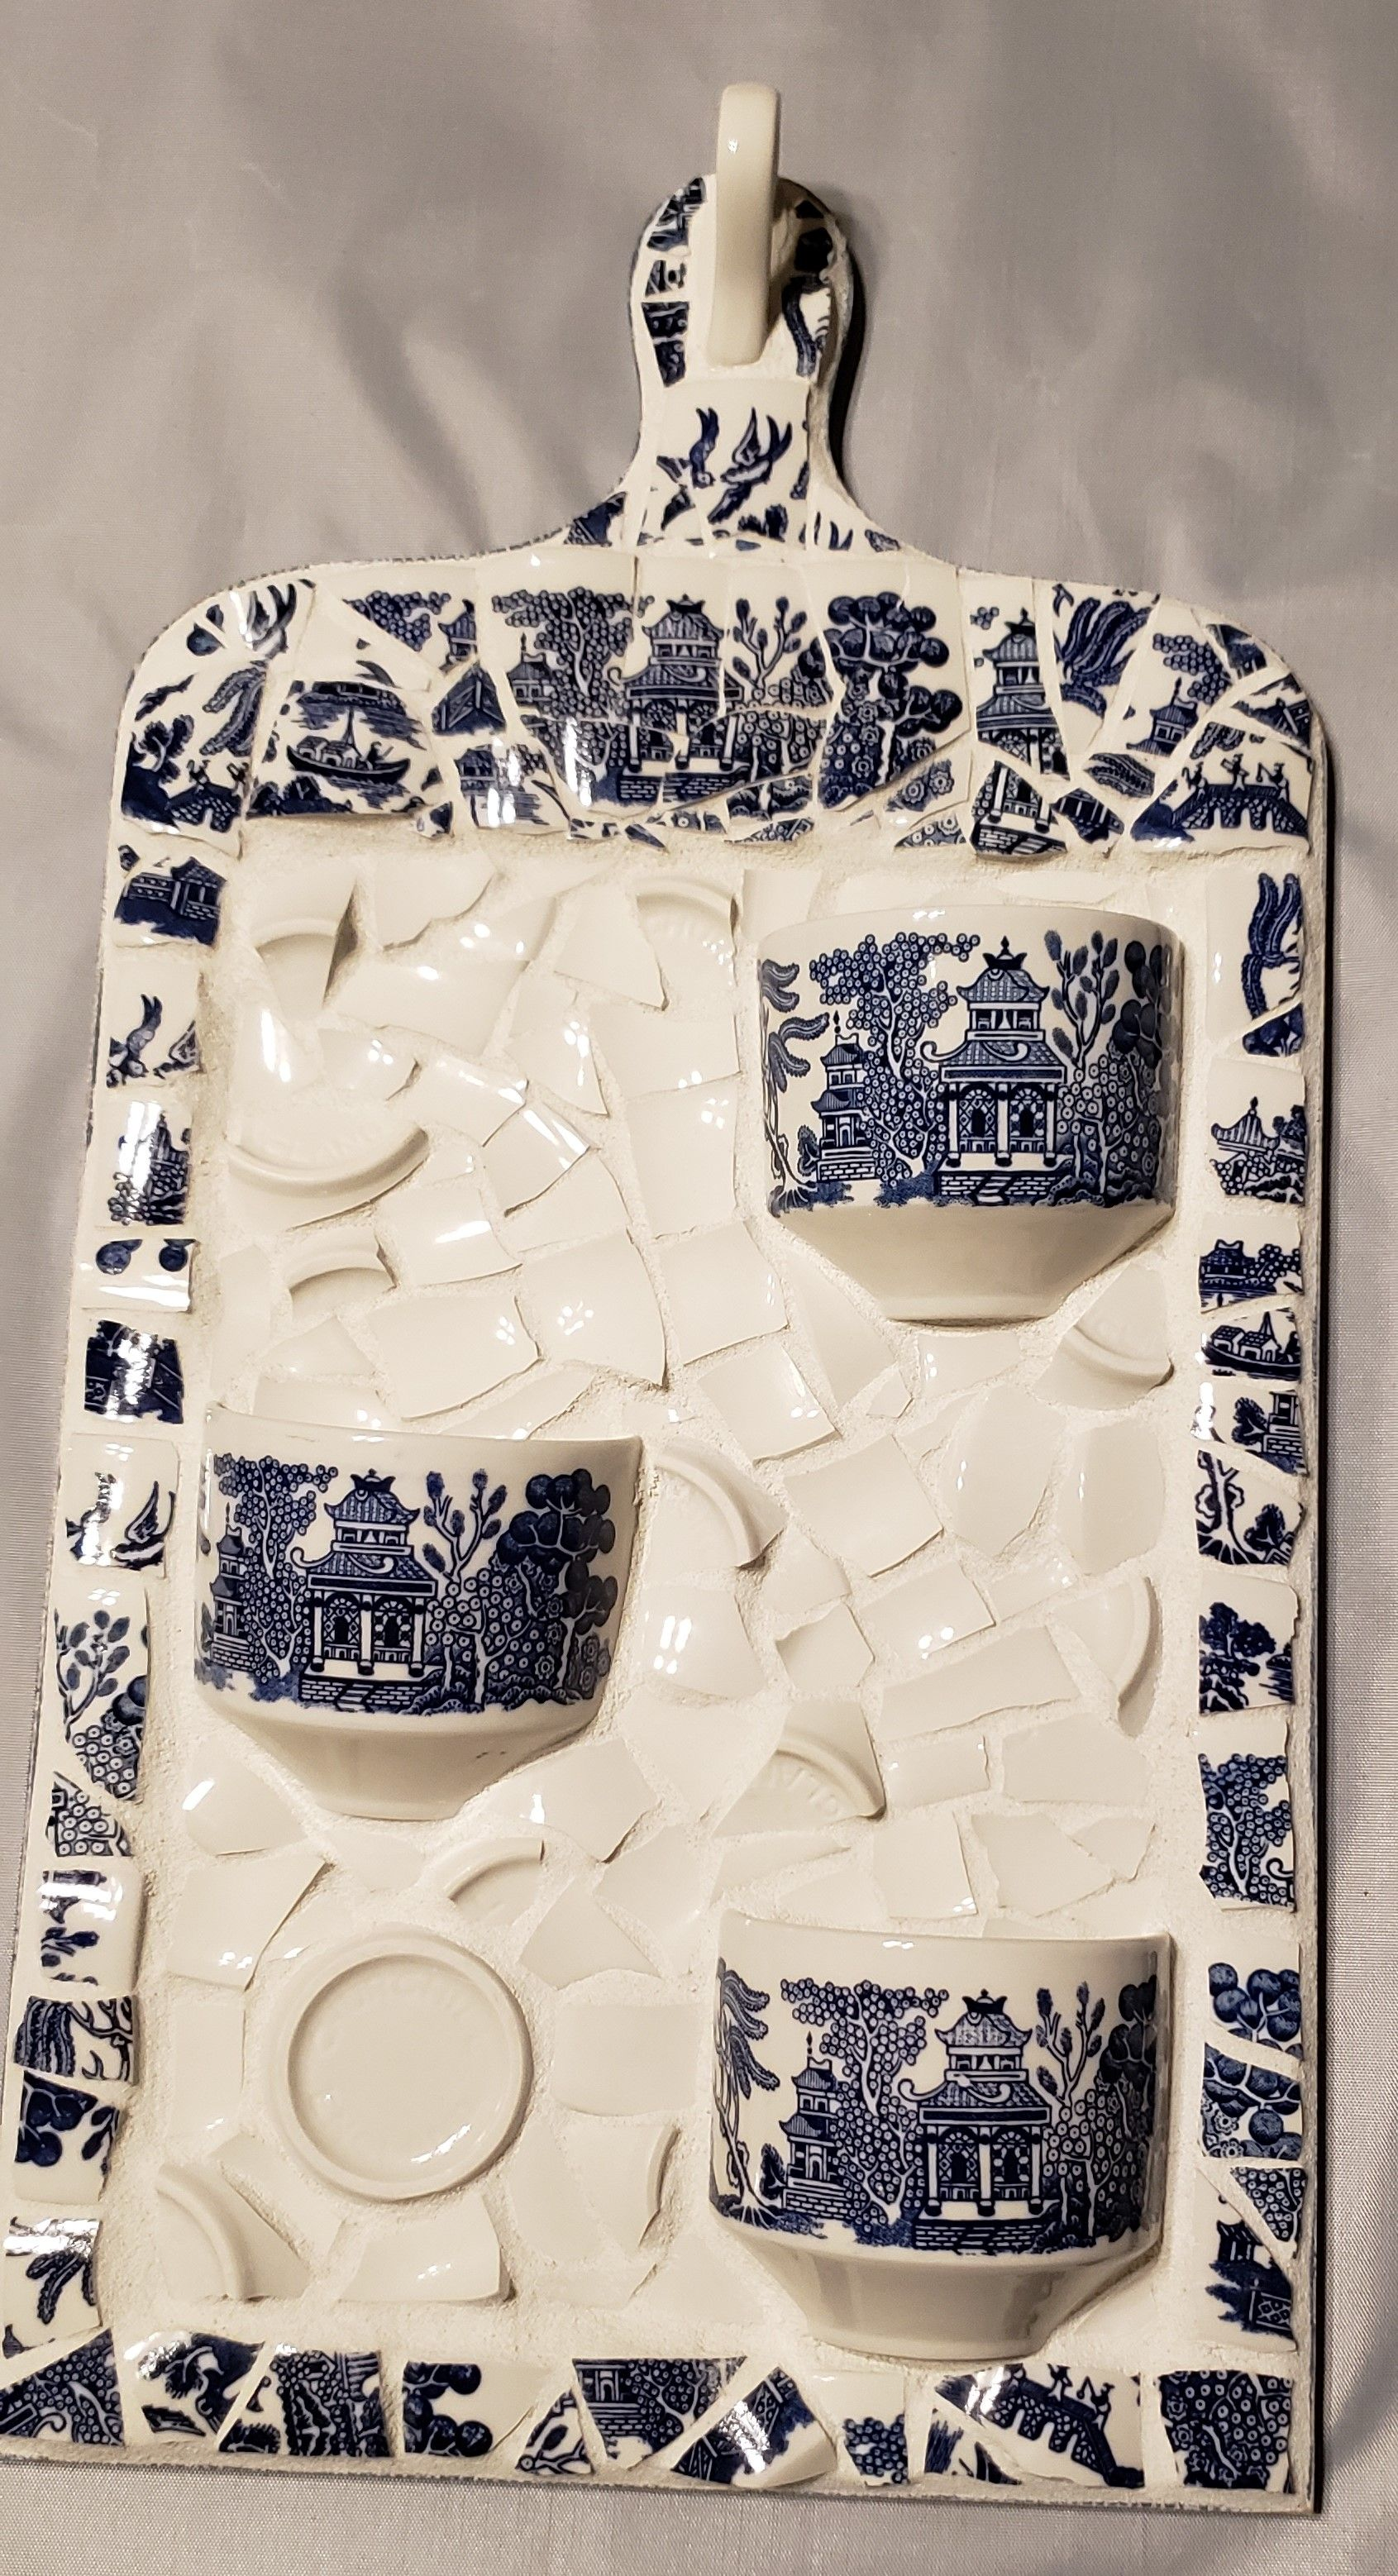 Created by Amy Glass, Broken By Design Mosaics. 75